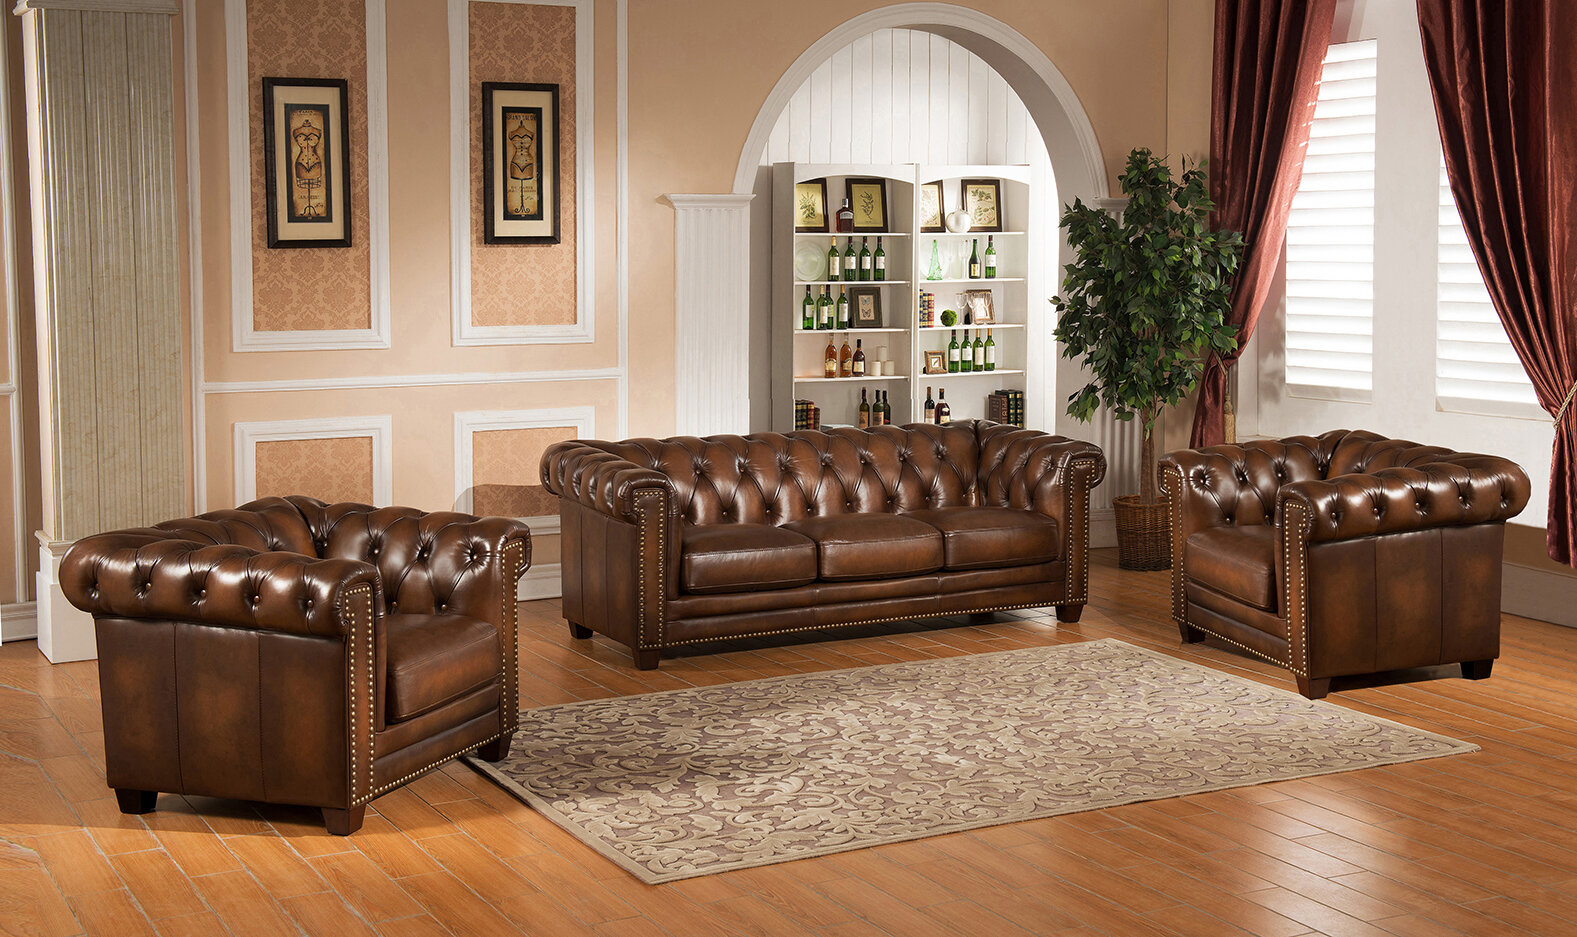 3 Piece Living Room Sofa Set: Hickory Chesterfield Genuine Leather 3 Piece Leather